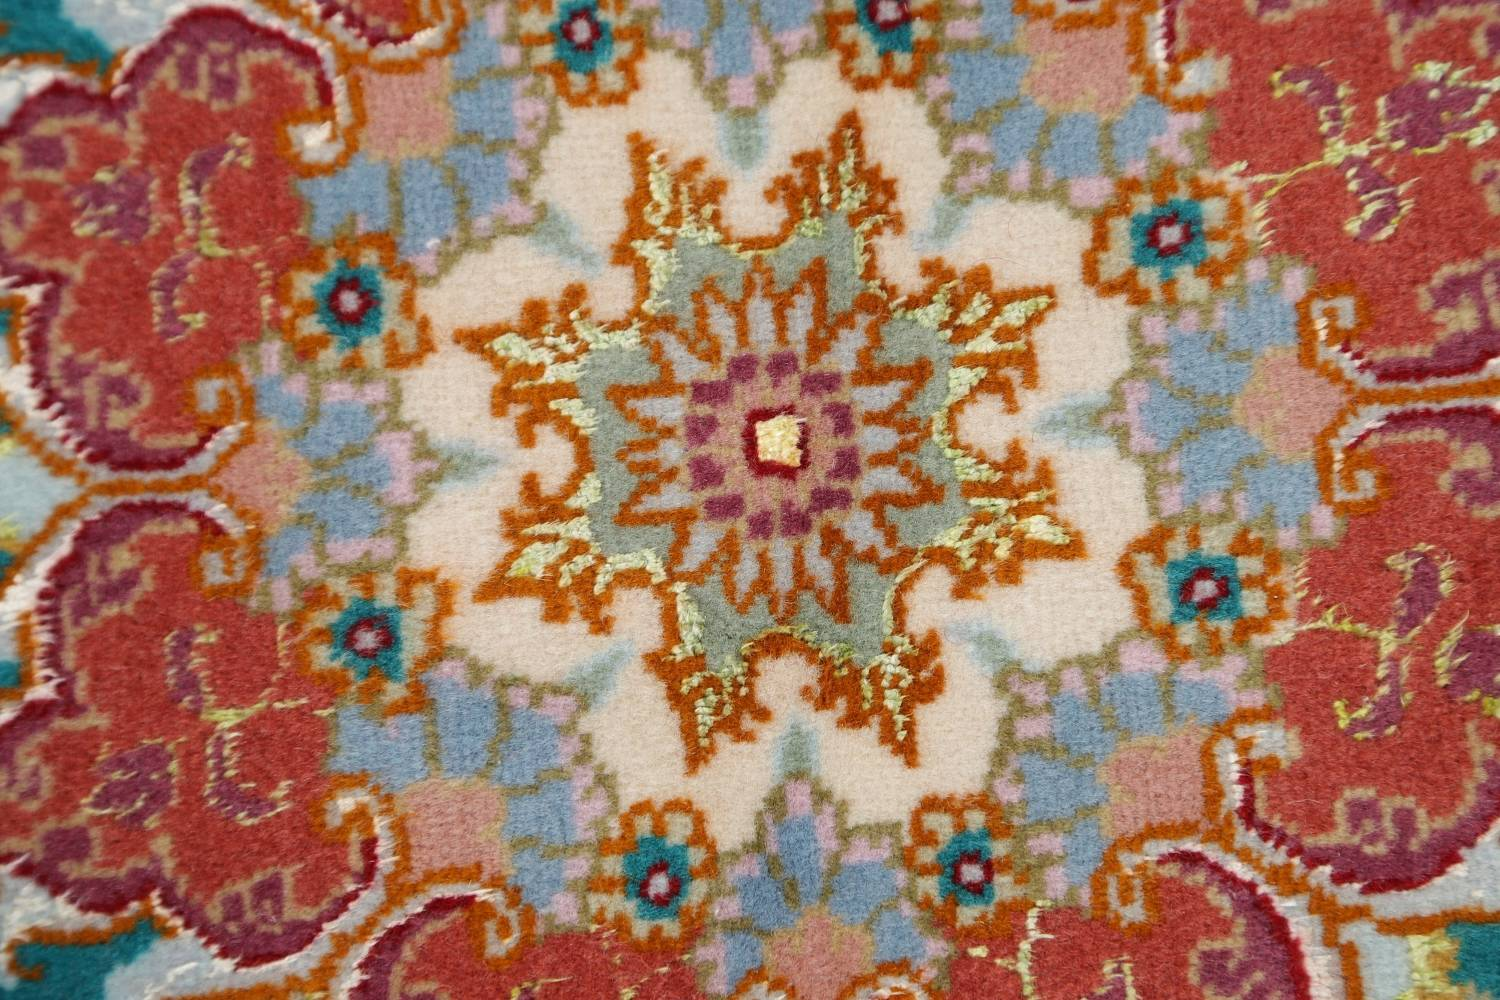 Floral Teal Tabriz Persian Hand-Knotted 3x3 Wool Silk Star Rug image 7